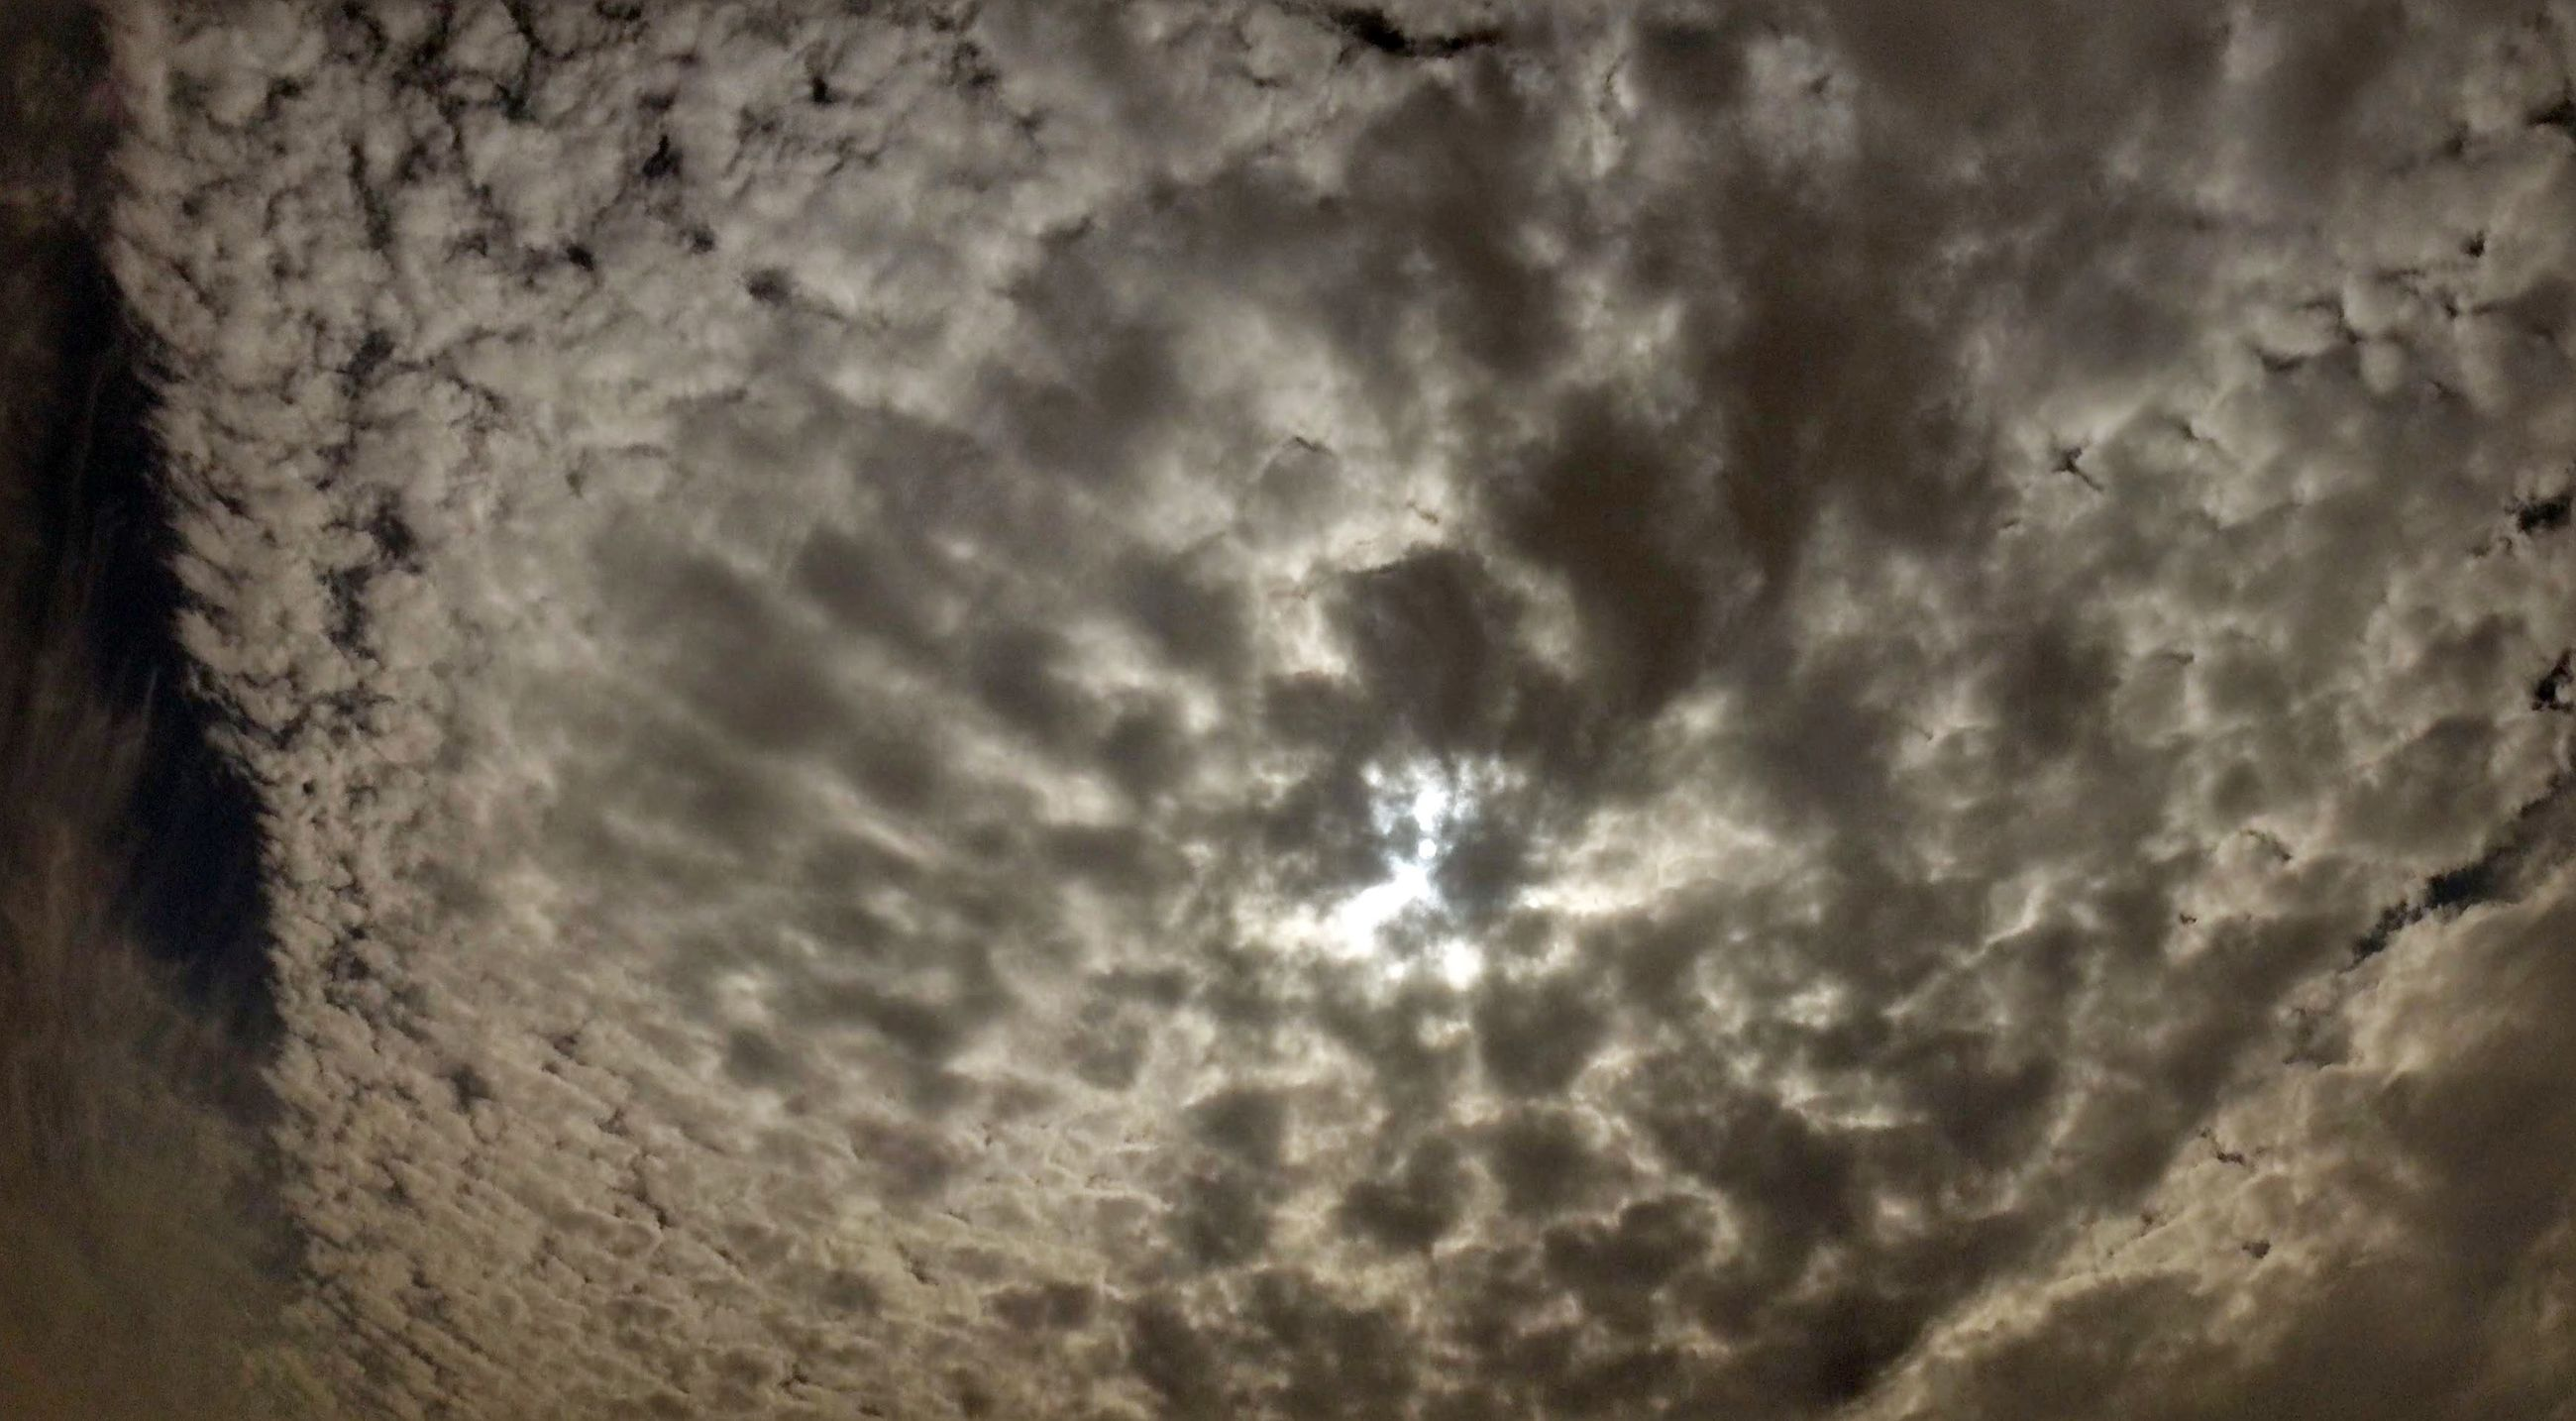 cloud - sky, cloudy, full frame, sky, backgrounds, nature, weather, beauty in nature, tranquility, low angle view, no people, scenics, outdoors, day, textured, cloud, cloudscape, pattern, overcast, sky only